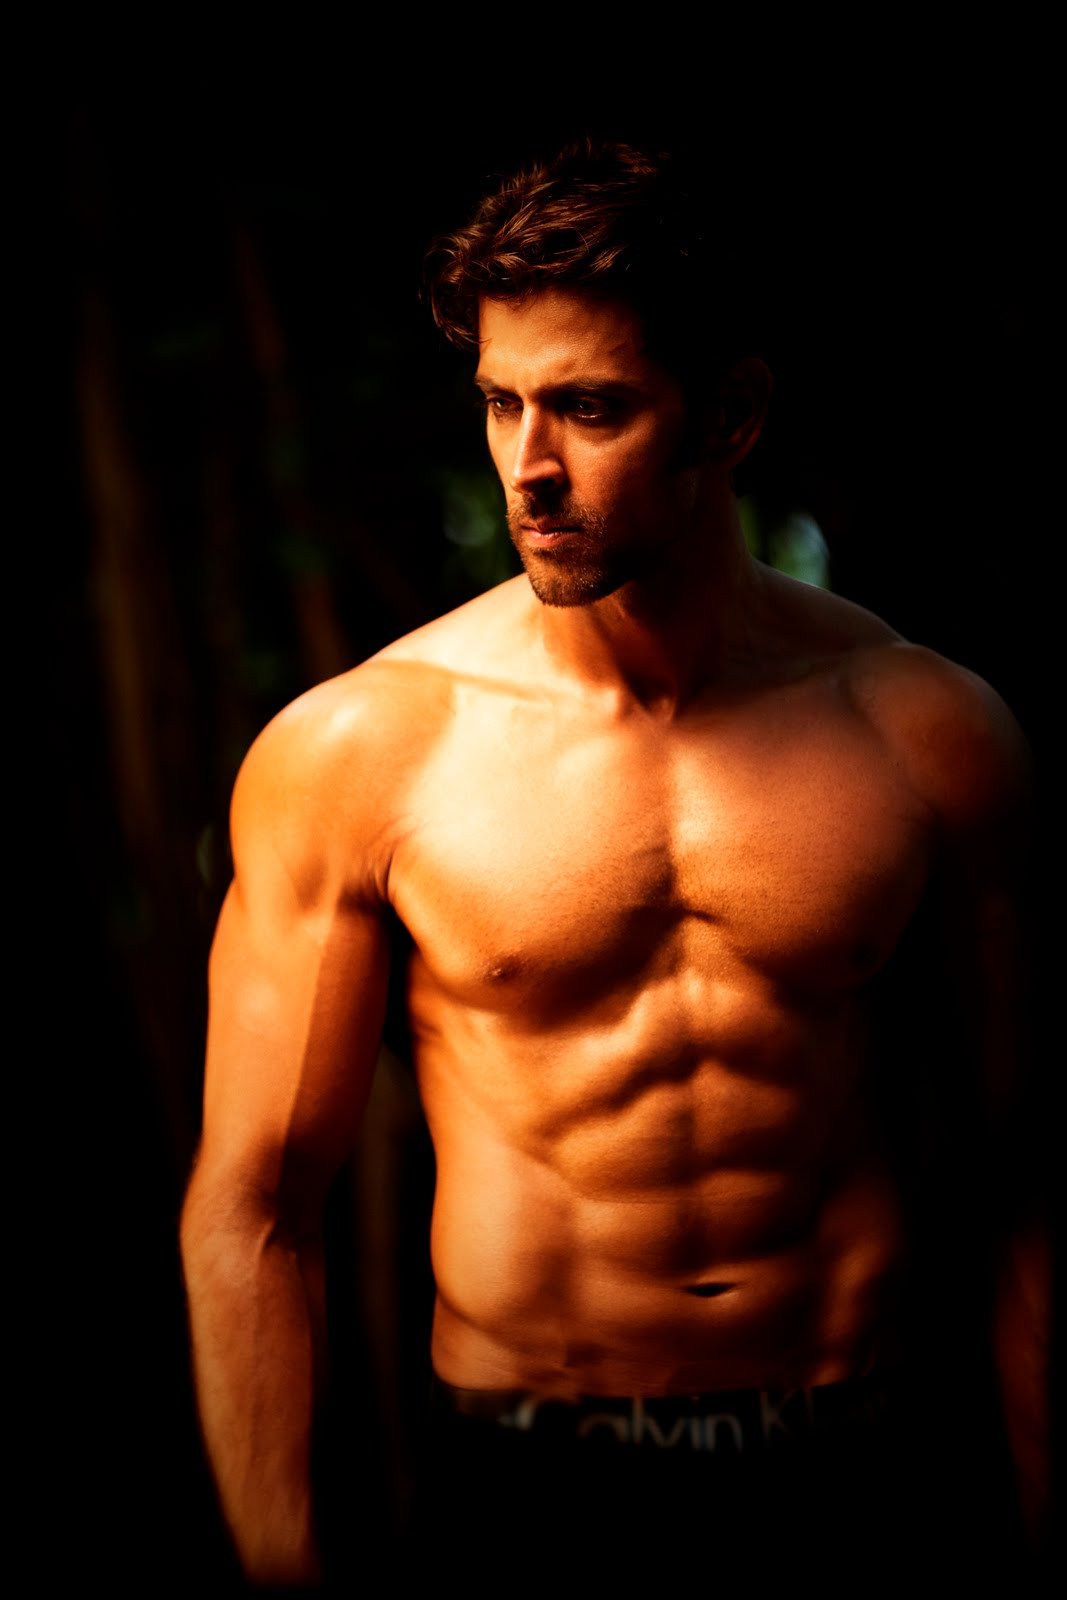 shirtless bollywood men hrithik roshan